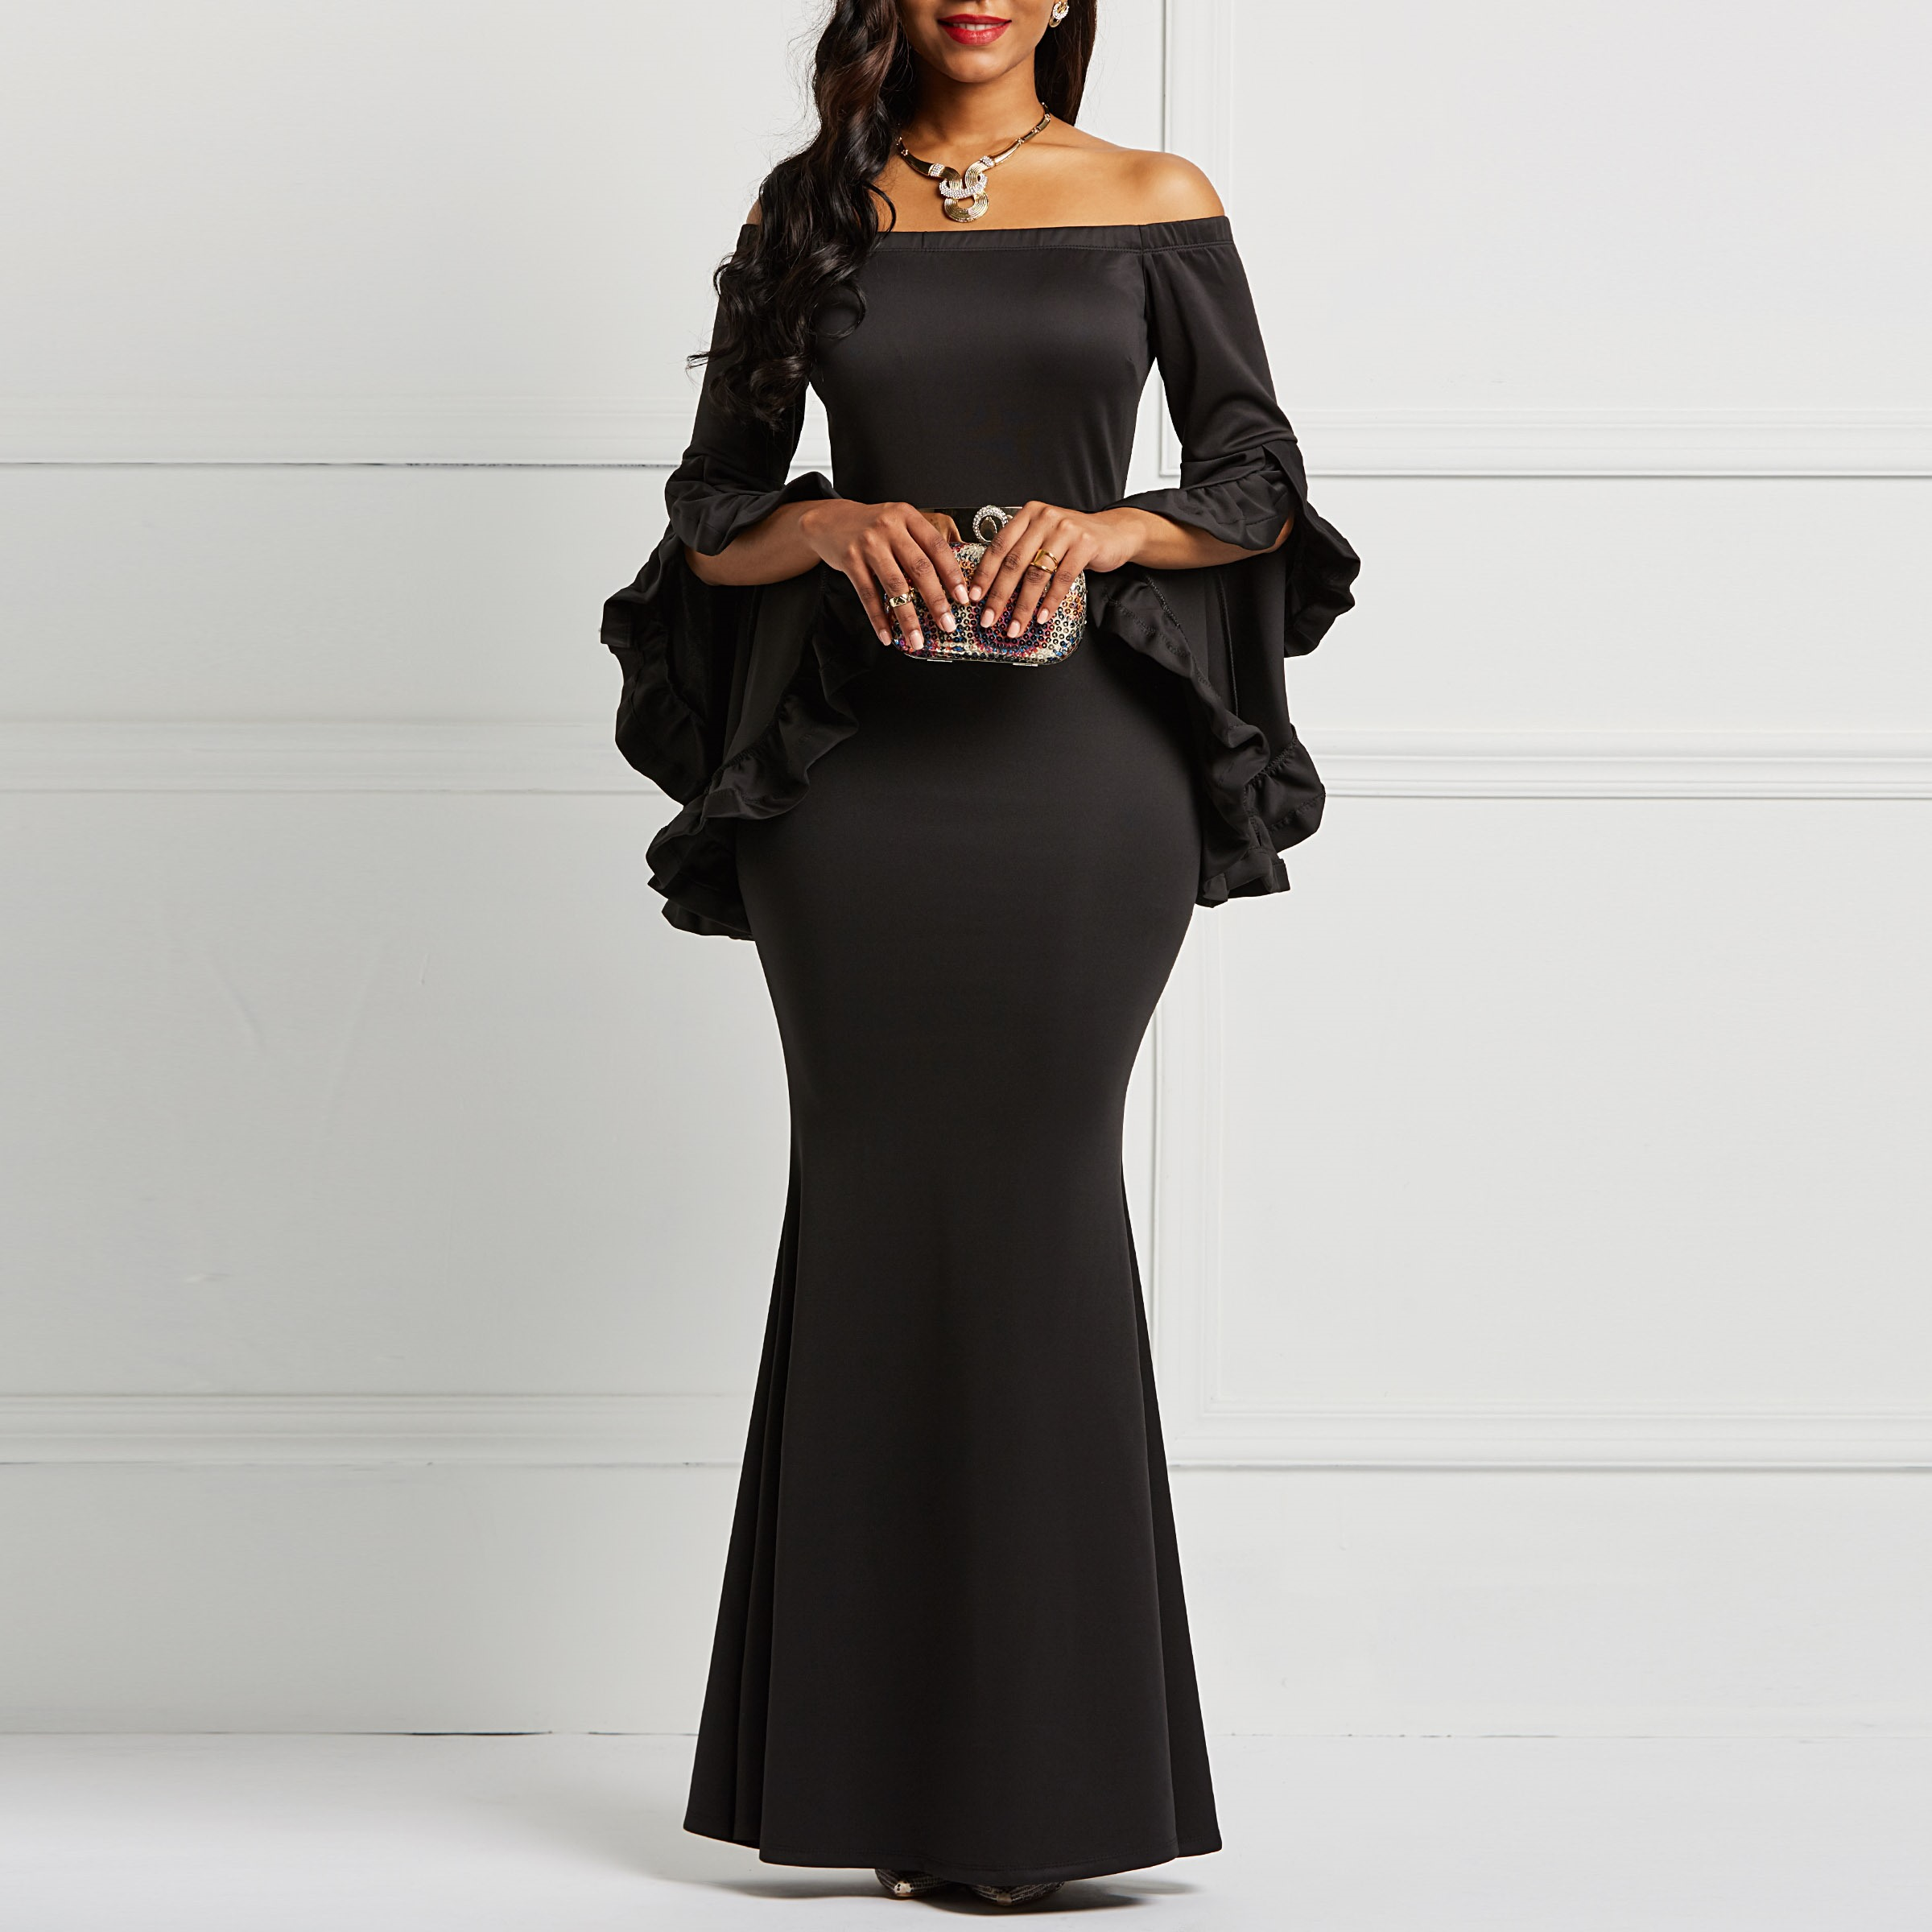 Clocolor Women Long Party Dress Elegant Black Ruffles Long Sleeve Bodycon Ladies New Year Evening Celebrity Inspired Dresses